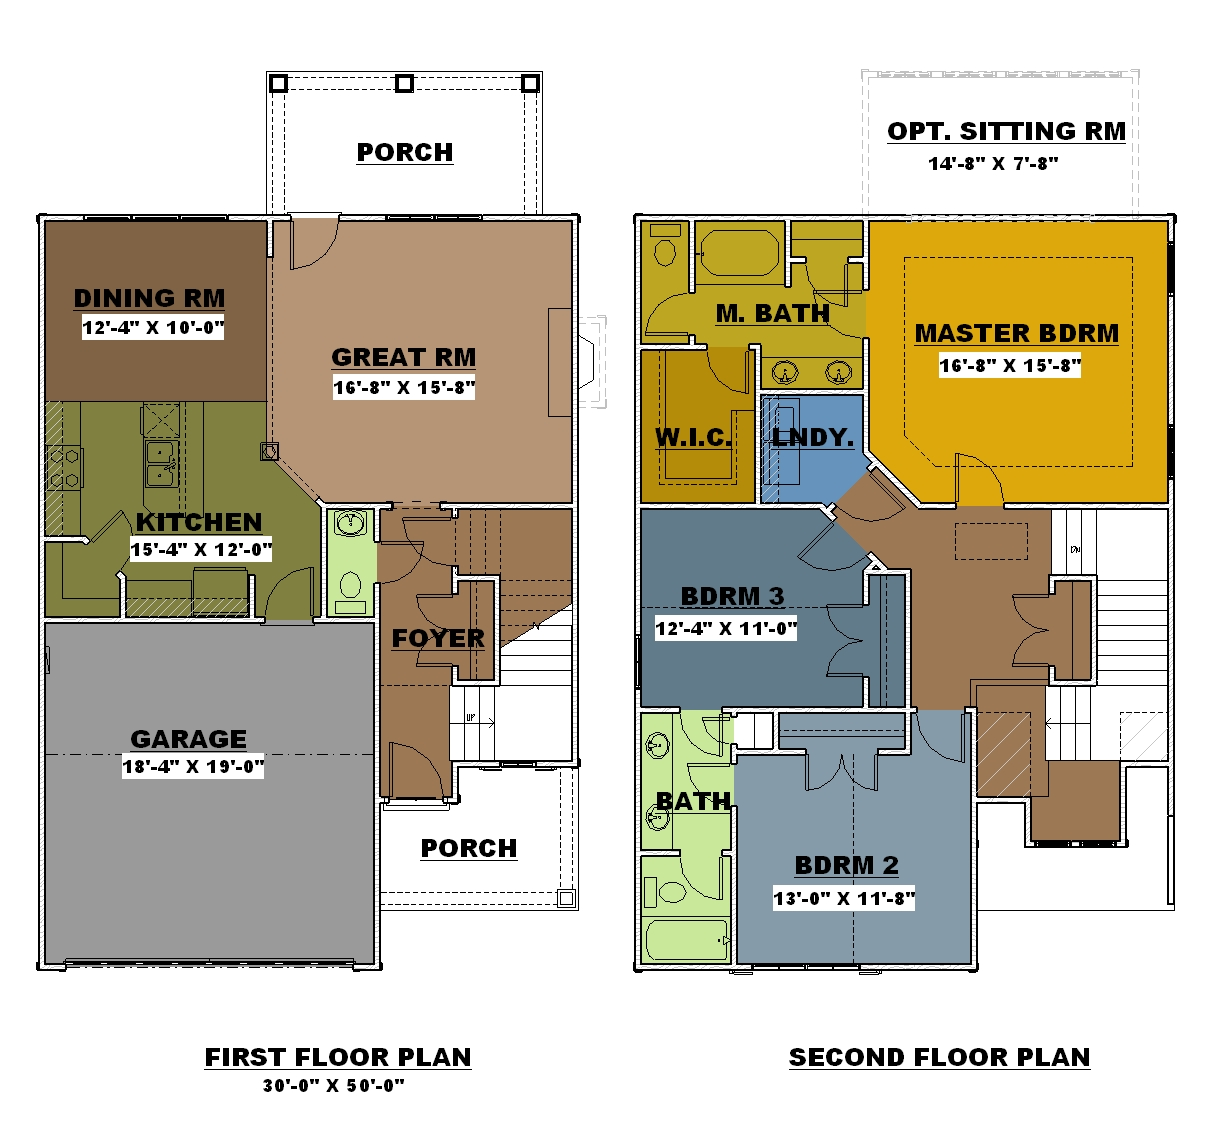 Raedden rt bailey construction for 2 story 2 bedroom apartment plans